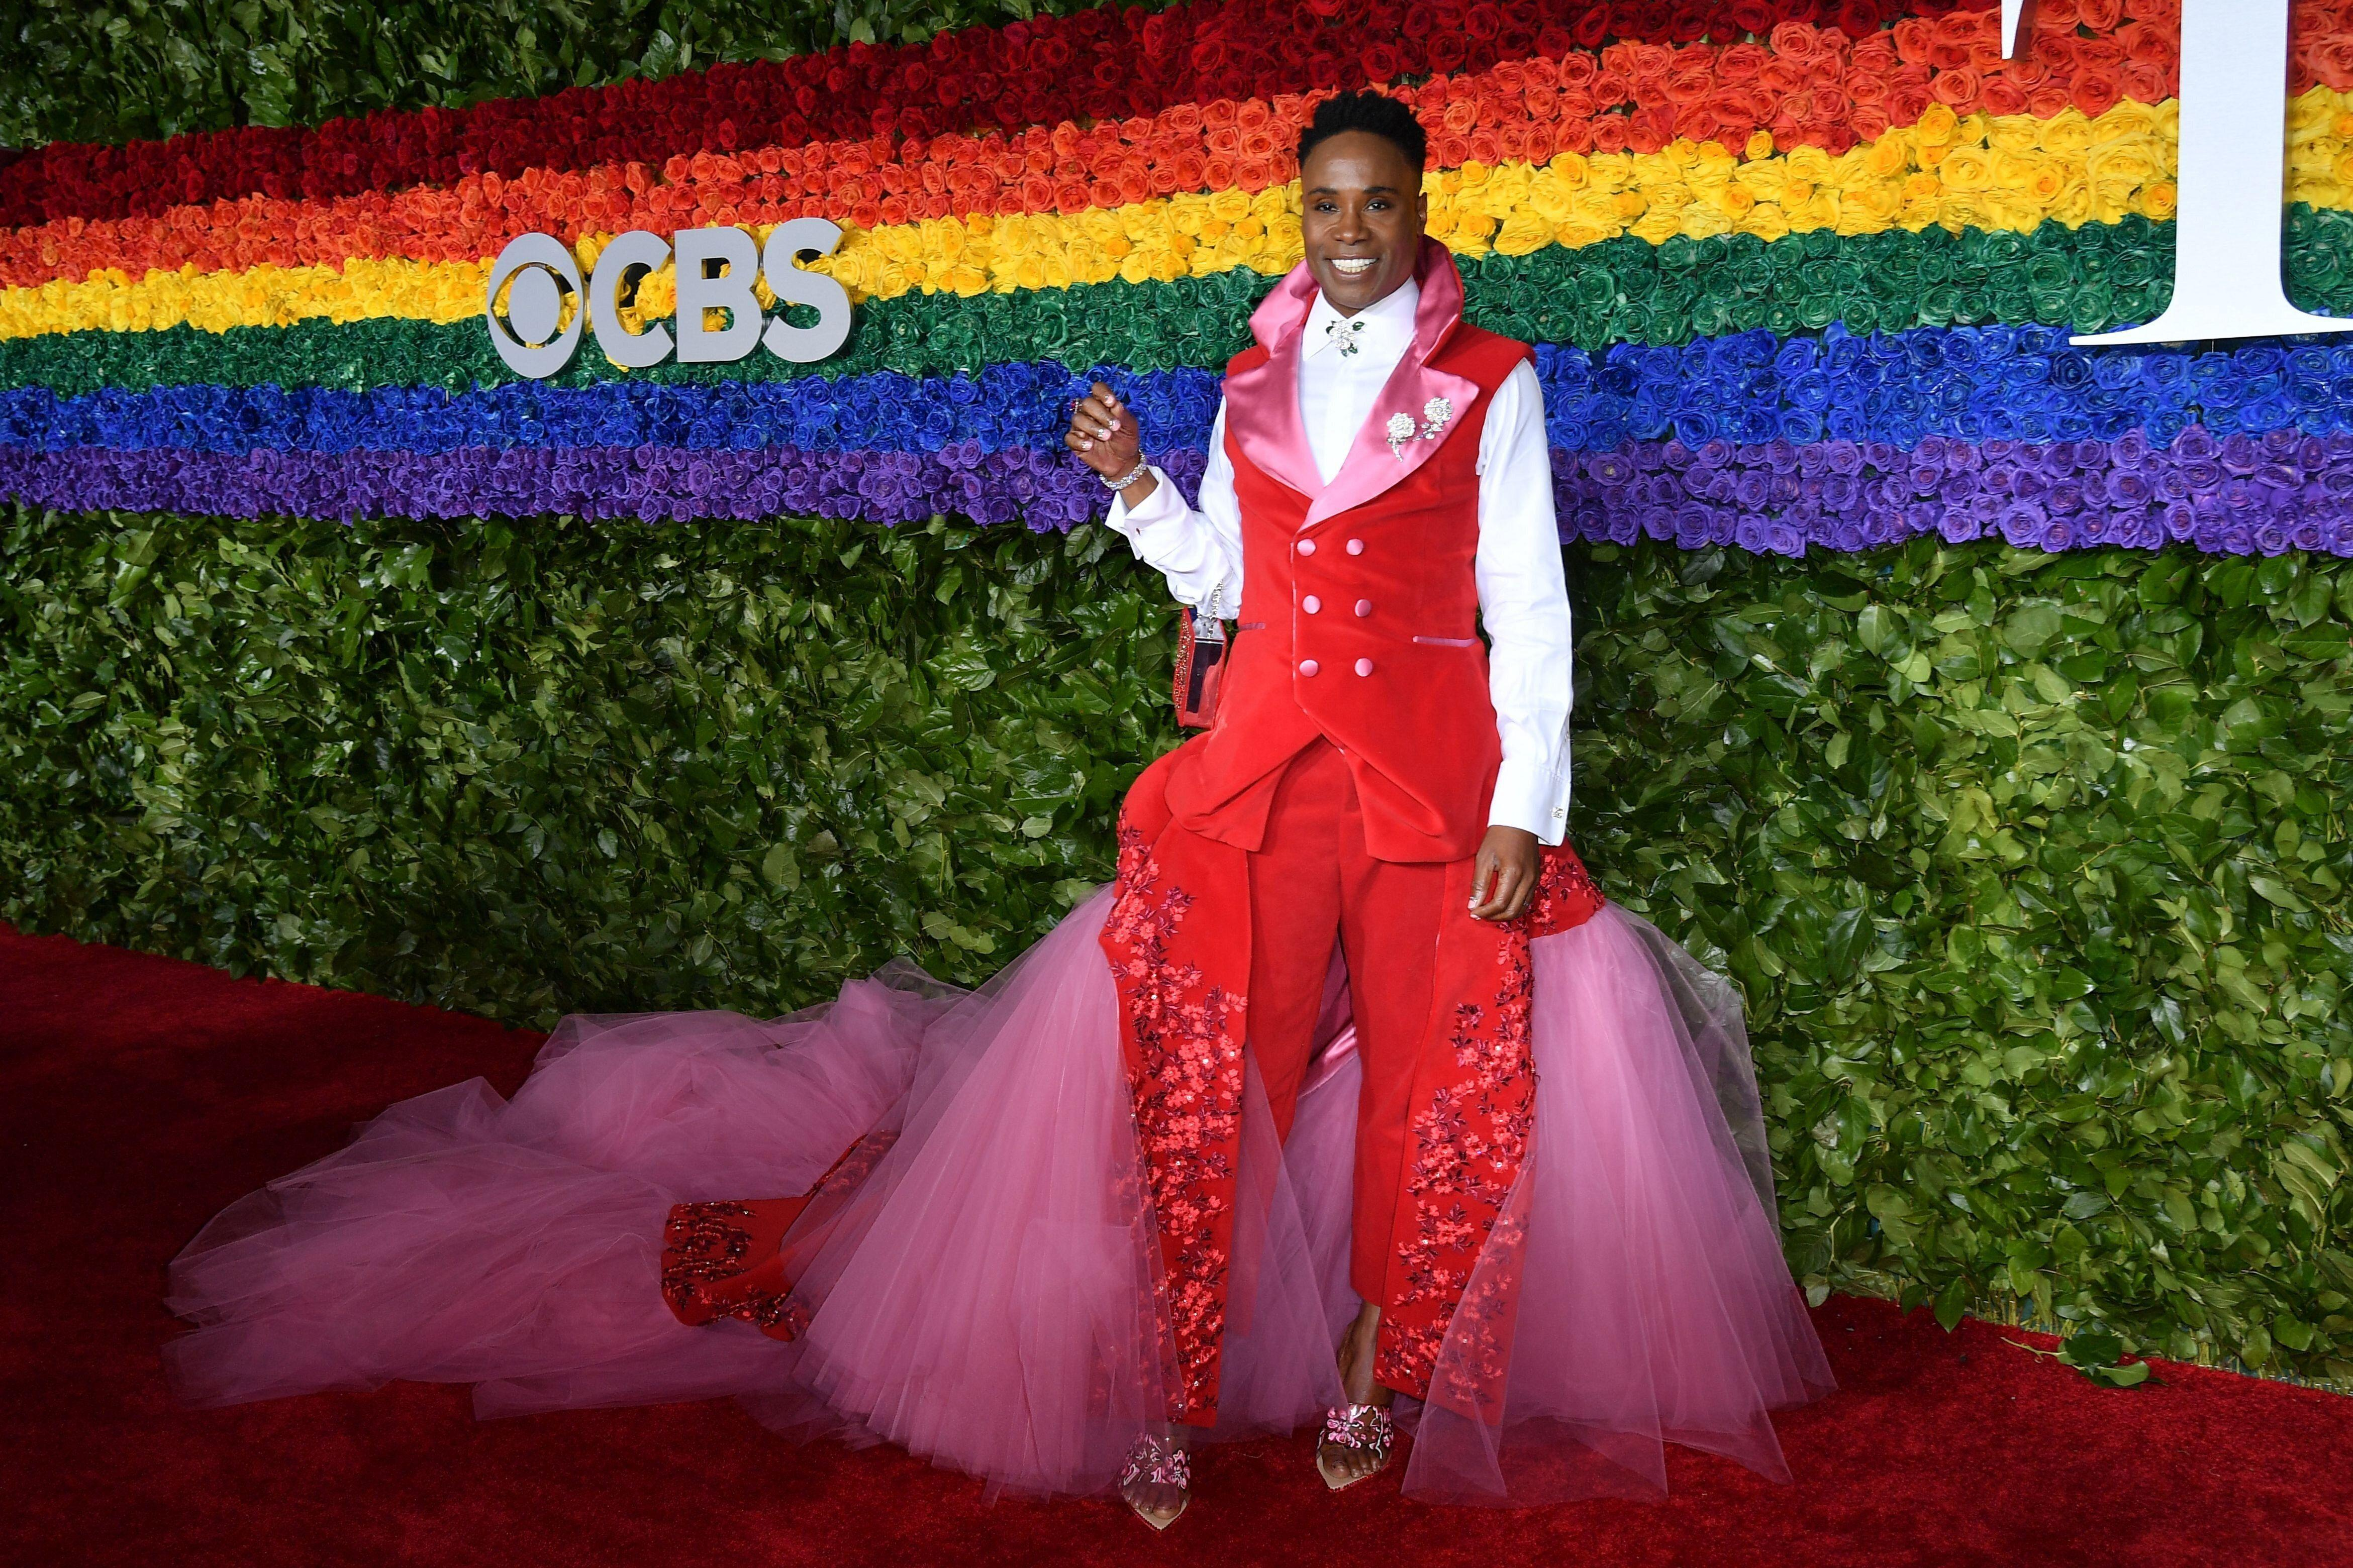 US actor Billy Porter attends the 73rd Annual Tony Awards at Radio City Music Hall on June 9, 2019 in New York City. (Photo by Angela Weiss / AFP) (Photo credit should read ANGELA WEISS/AFP/Getty Images)